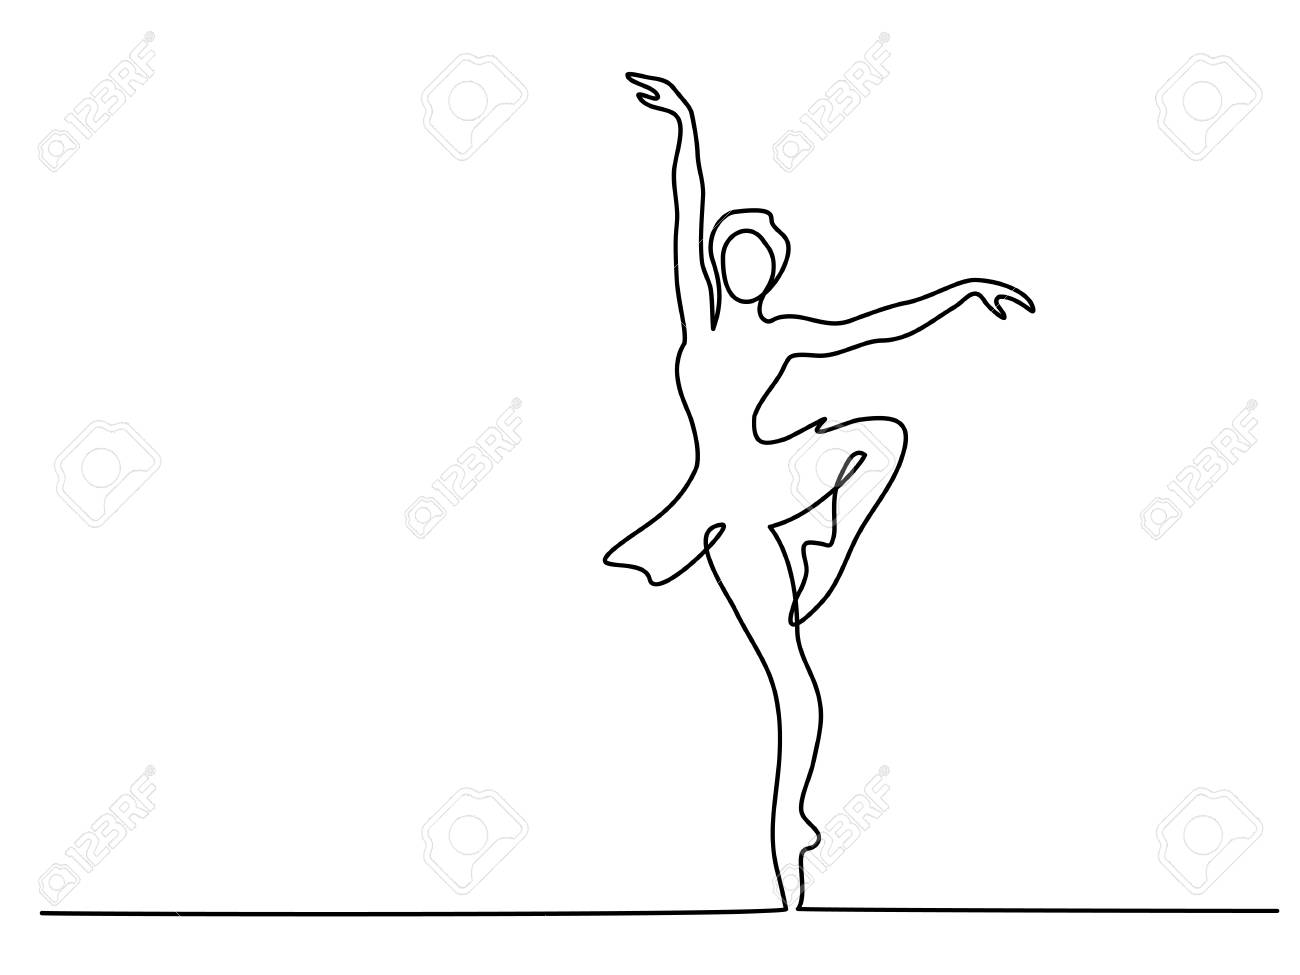 Continuous Line Art Drawing Ballet Dancer Ballerina Vector Royalty Free Cliparts Vectors And Stock Illustration Image 90473619